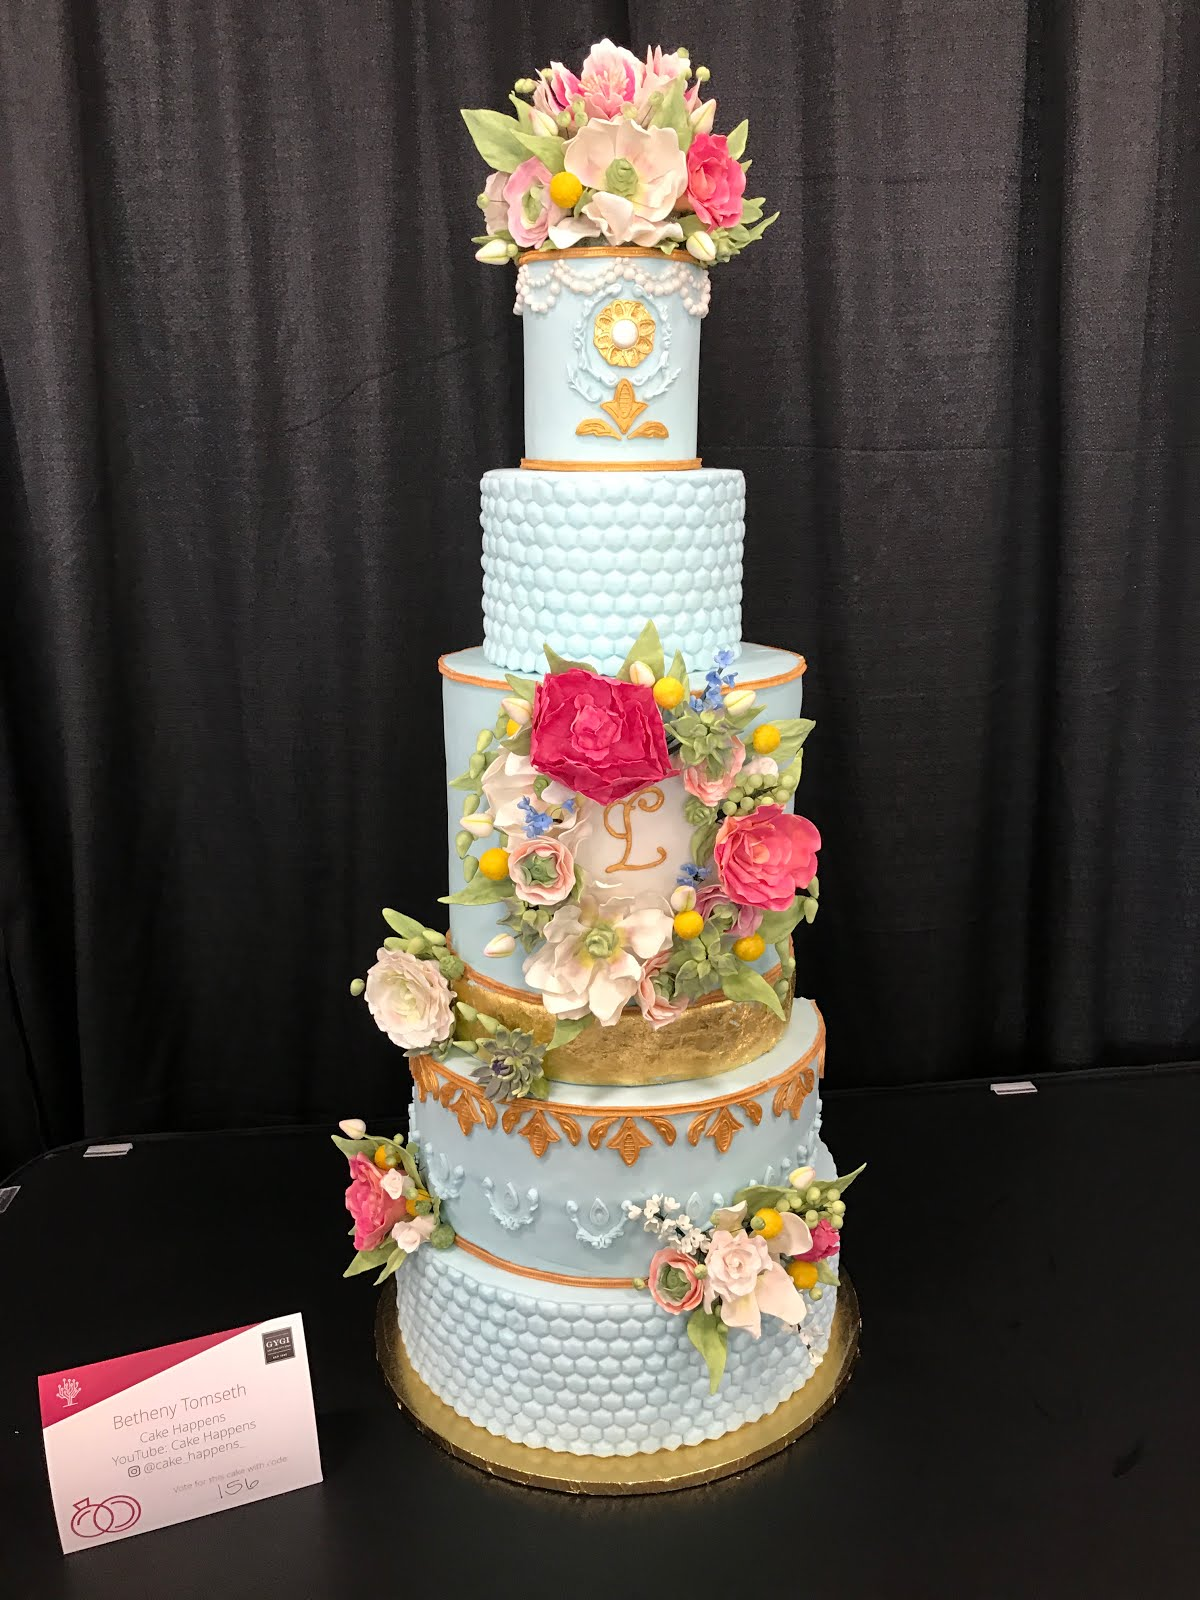 One Of The Bonuses From Attending The RootsTech 2017 Conference In Salt  Lake City, Utah Was The Chance To See The Cake Baking Competition.